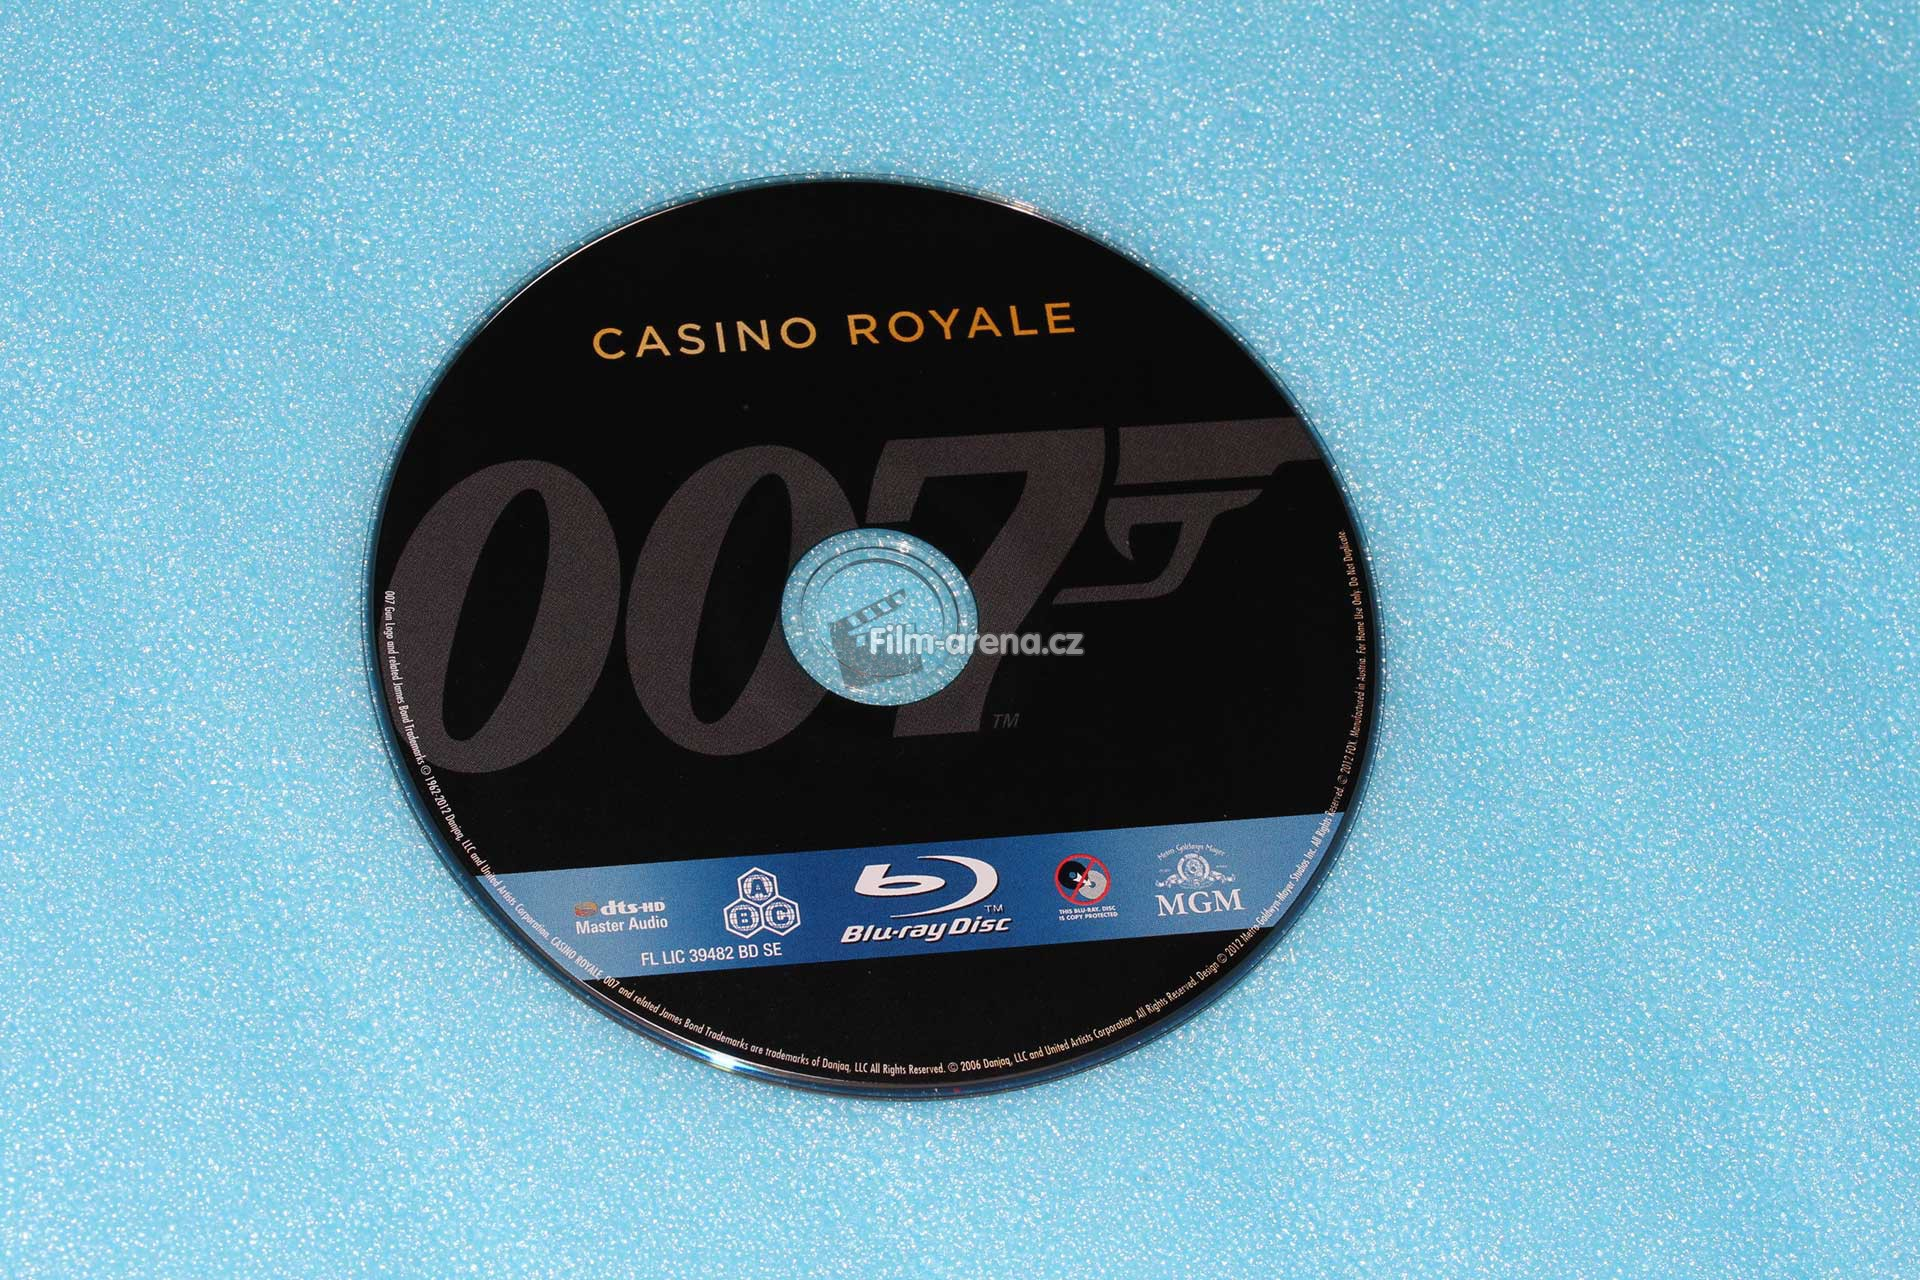 http://www.filmarena.cz/upload/images/nazivo/James_Bond/2006_Casio_royale/2006_casino_06.jpg